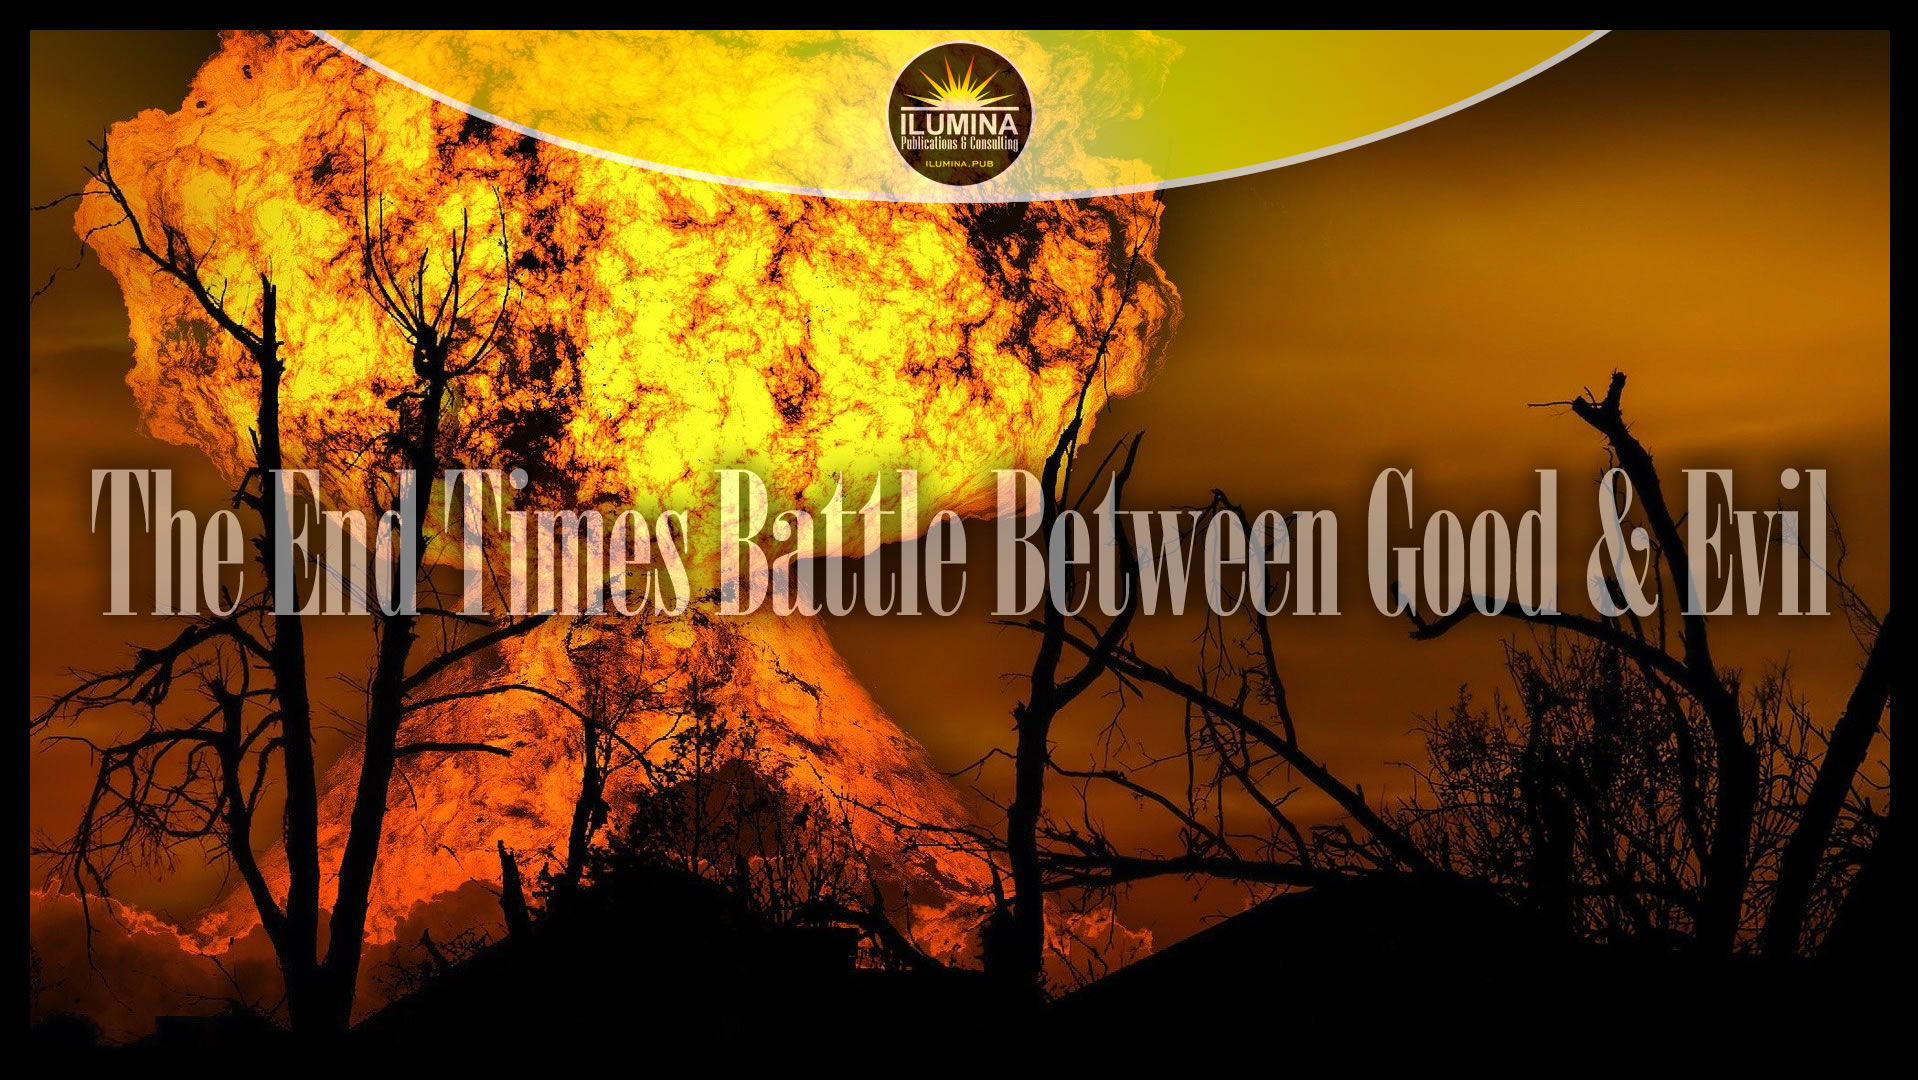 The End Times Battle Between Good & Evil